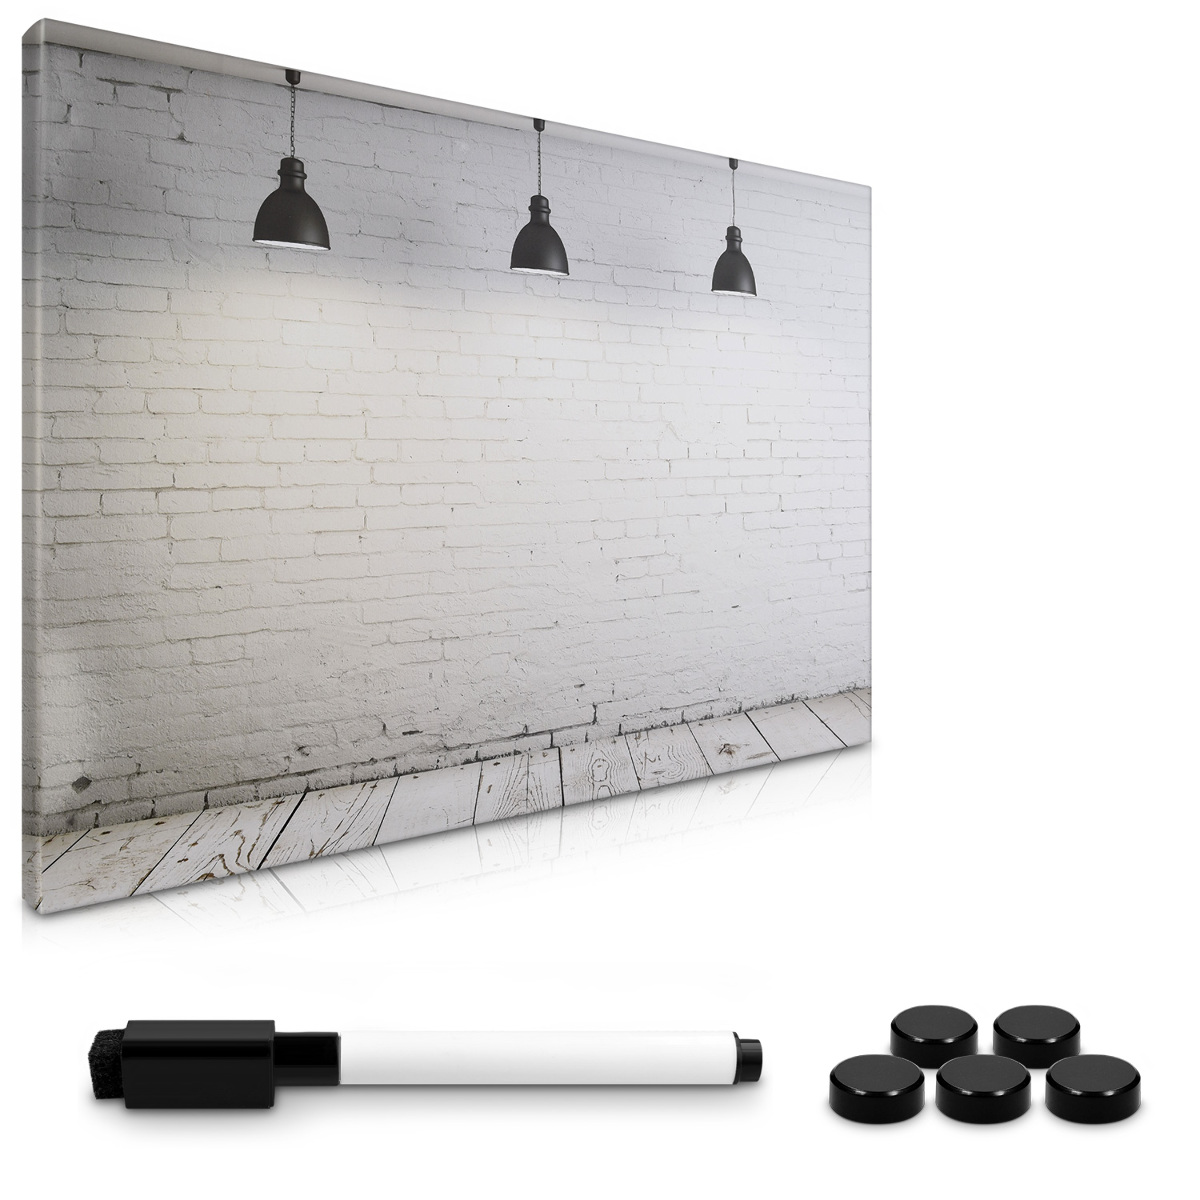 magnetpinnwand memoboard 60x40cm industrial design notiztafel abwaschbar ebay. Black Bedroom Furniture Sets. Home Design Ideas